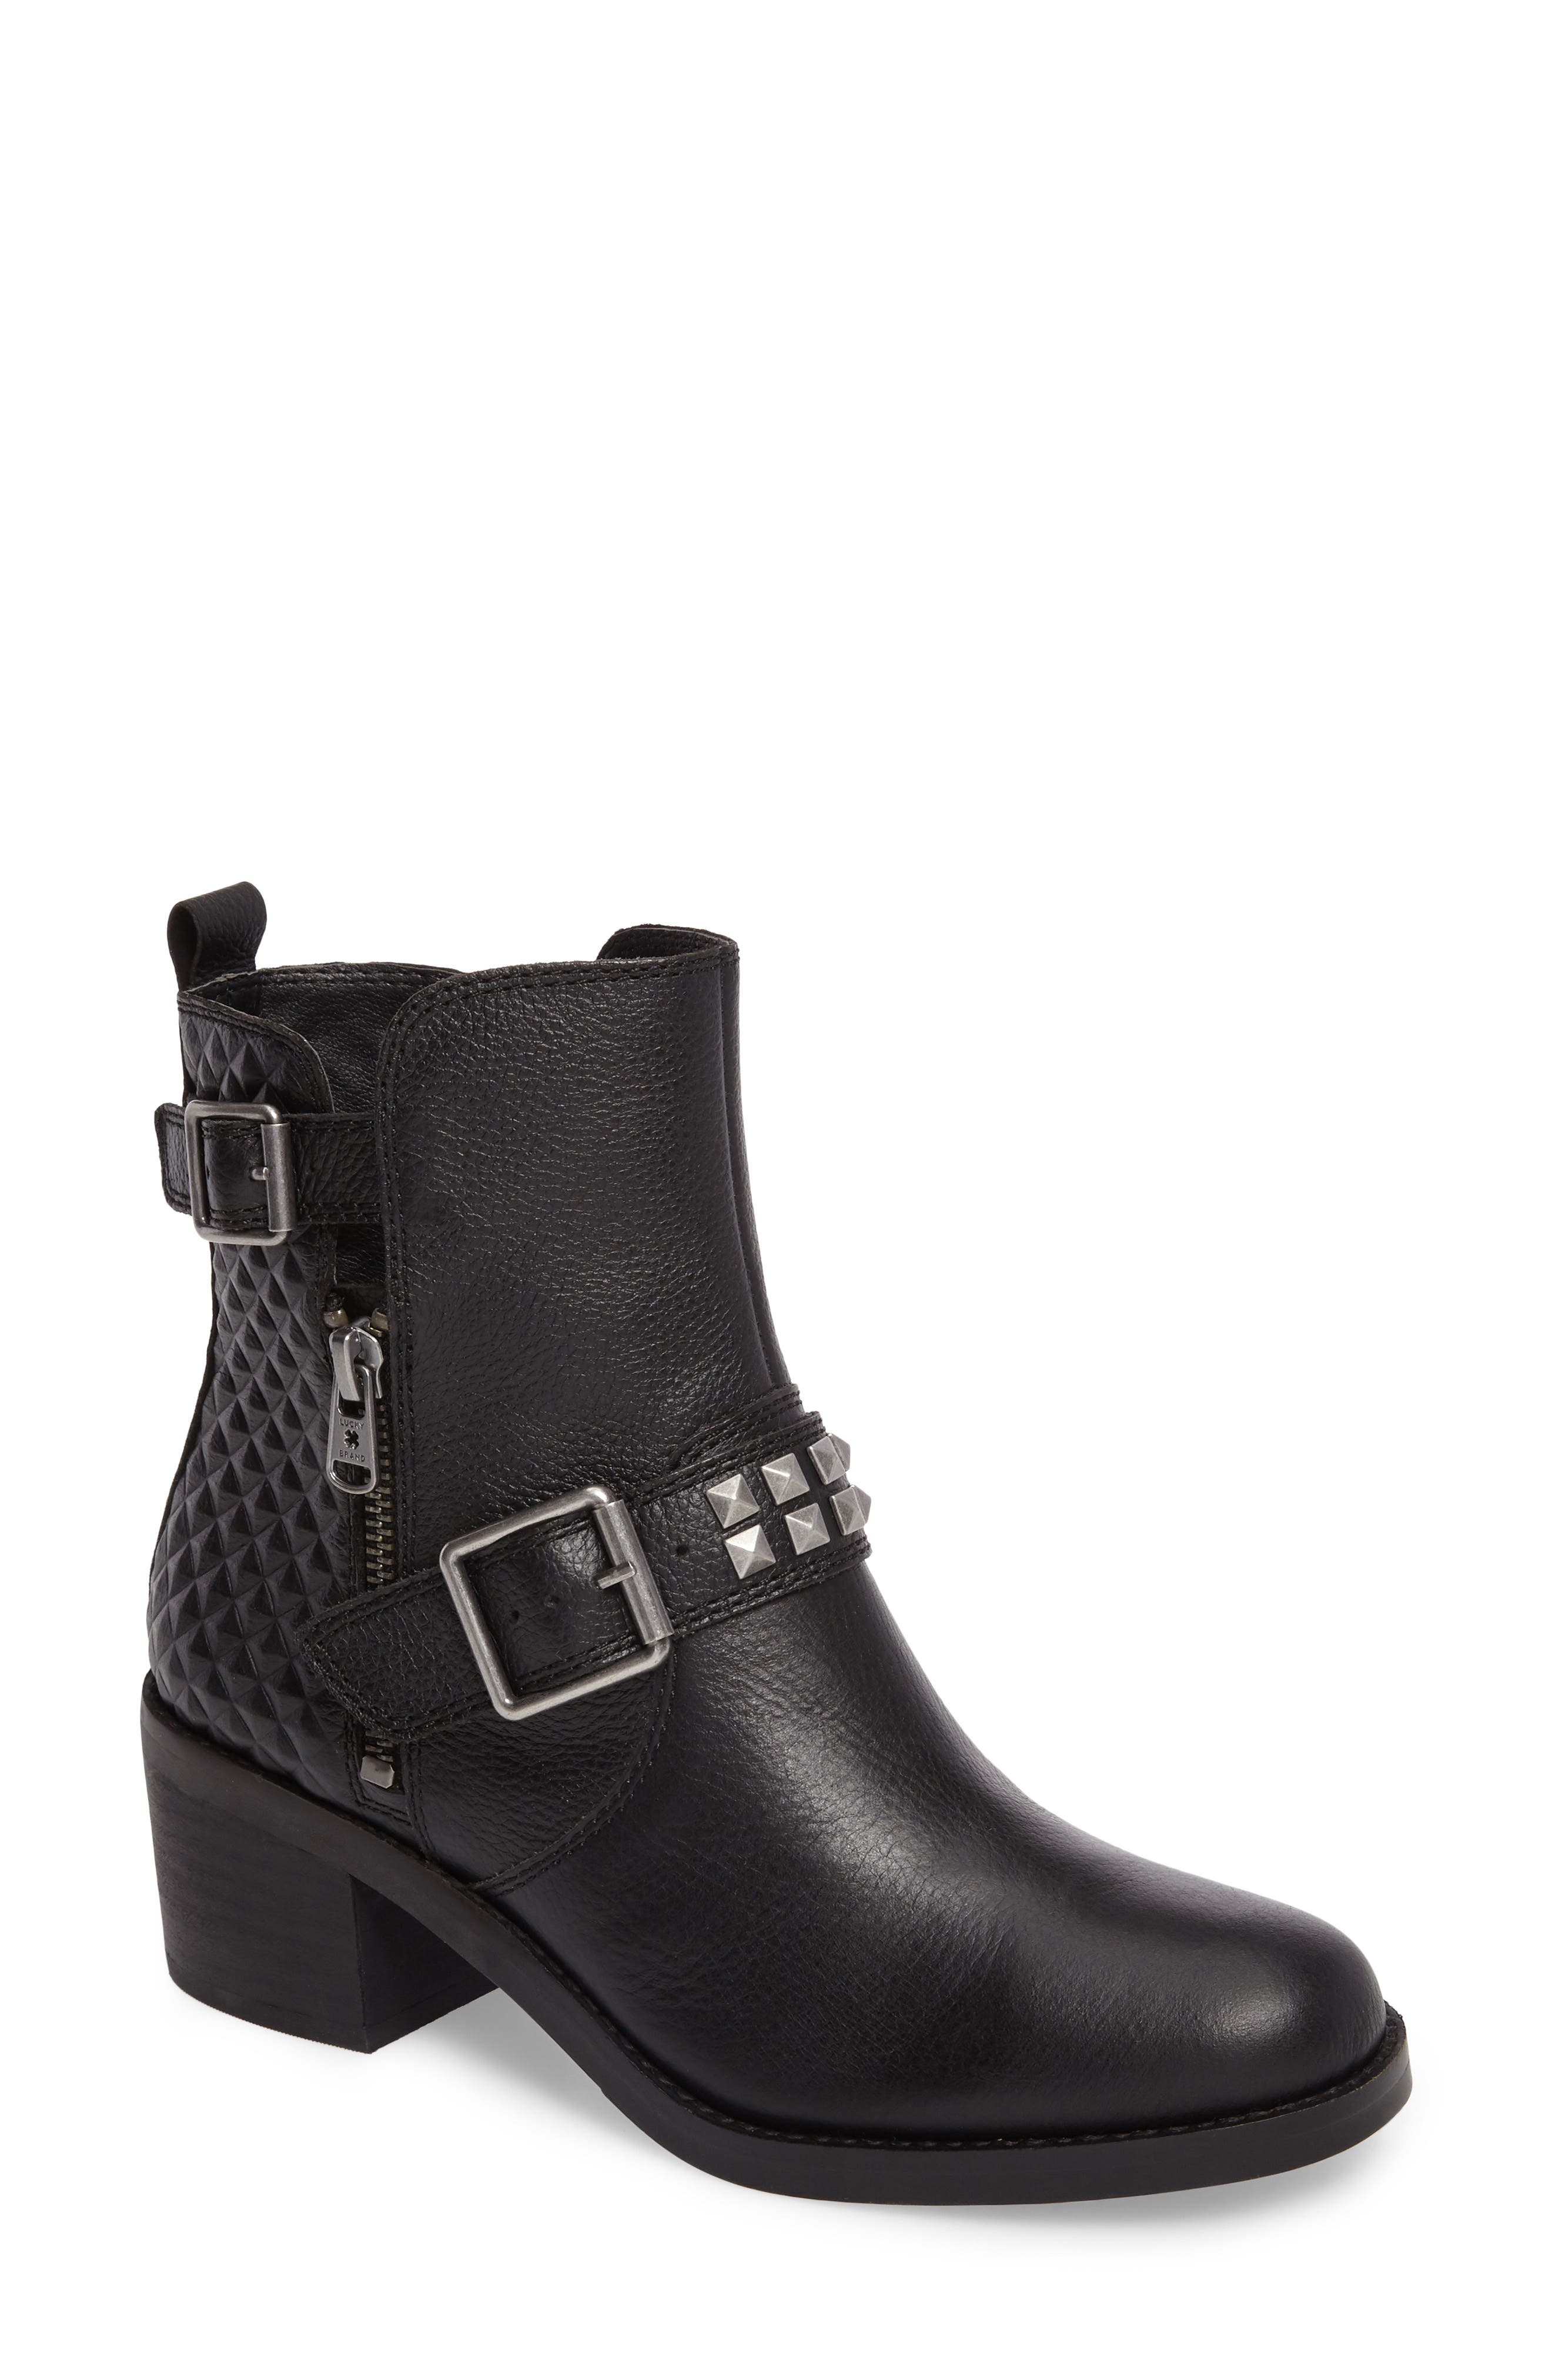 Alternate Image 1 Selected - Lucky Brand Cantini II Bootie (Women)